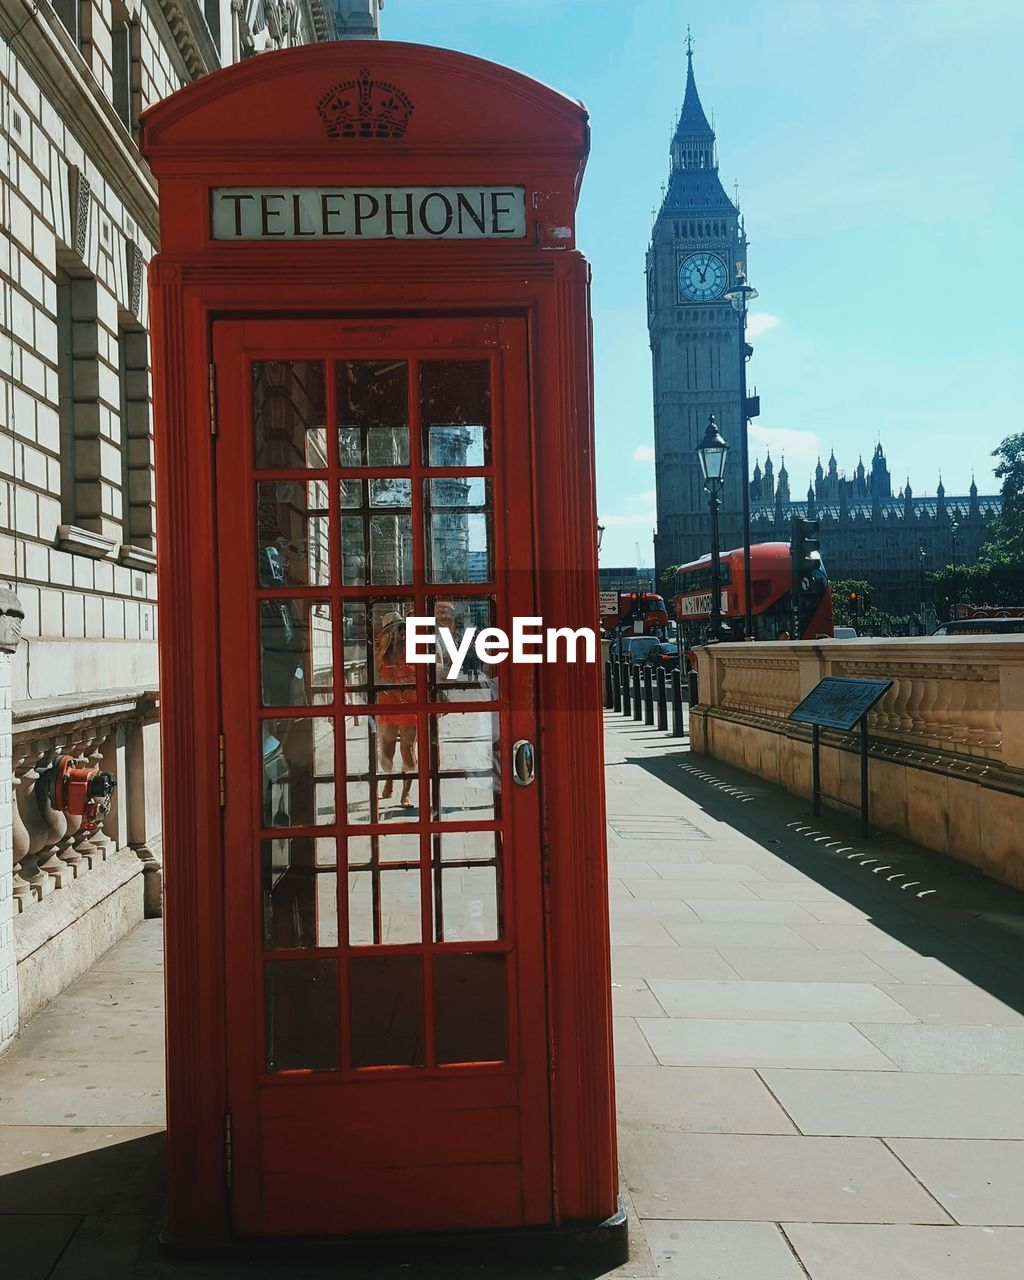 architecture, building exterior, built structure, text, travel destinations, telephone booth, day, red, clock tower, city, communication, outdoors, pay phone, no people, sky